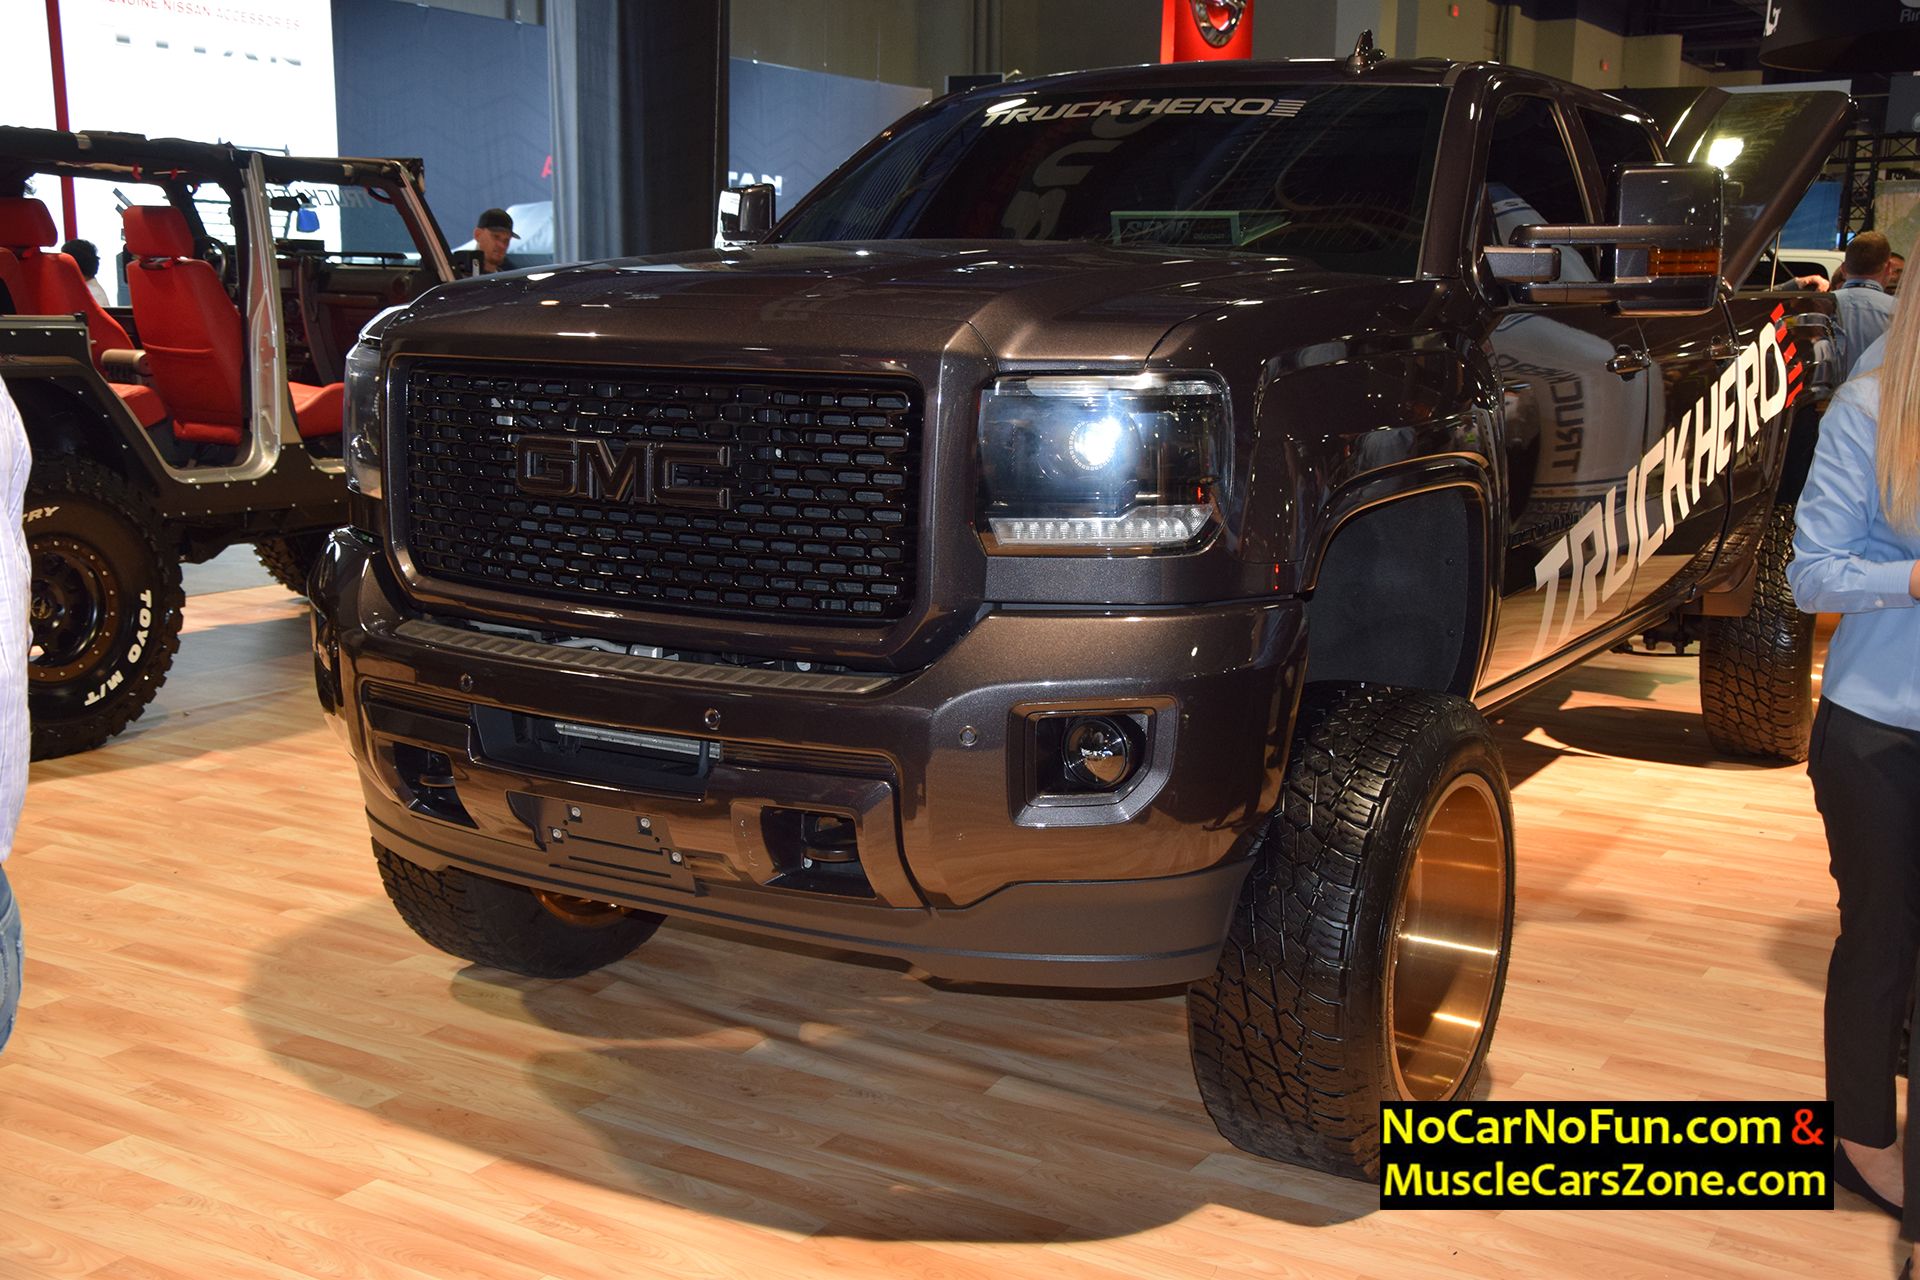 2015 Dodge Magnum >> Lifted GMC Denali Truck On Specialty Forged Wheels - 2015 ...